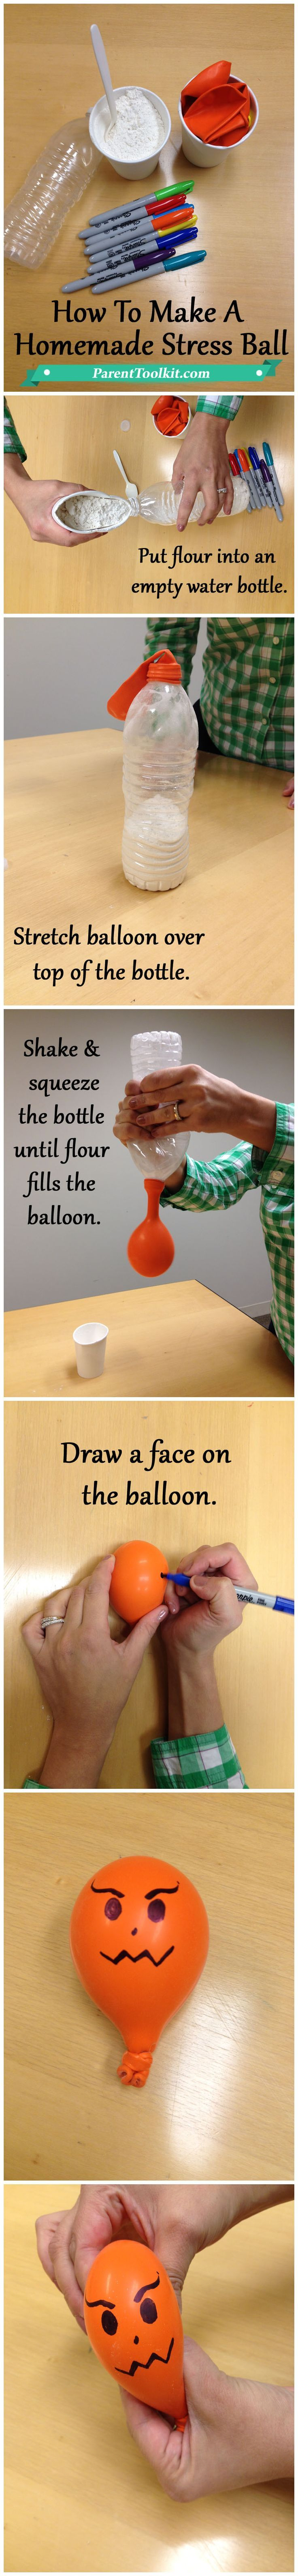 Help your child manage their stress by making homemade stress balls.